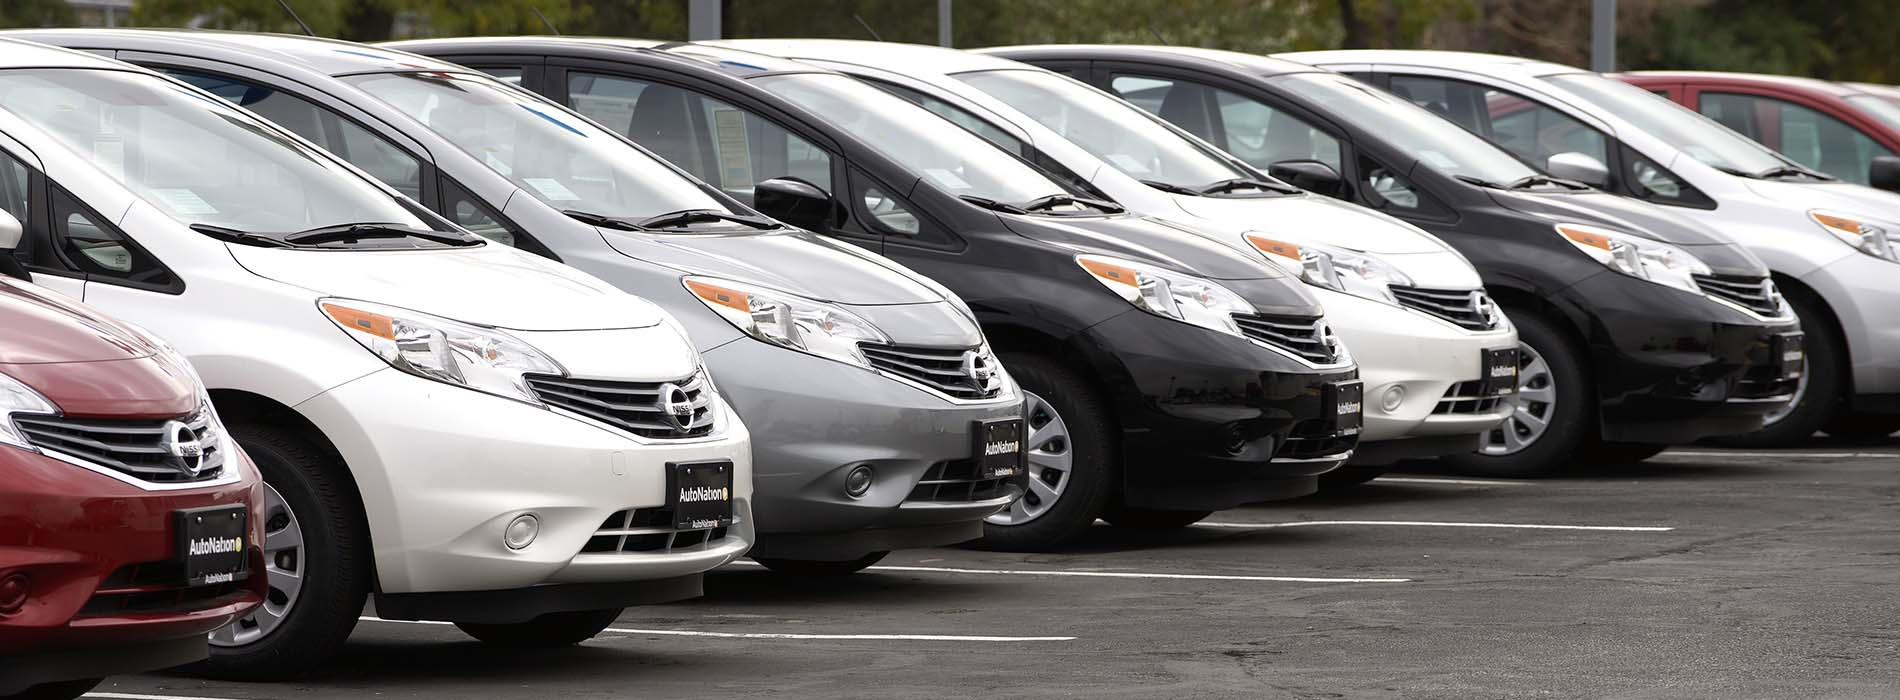 A line of new Nissan autos is seen outside a Nissan auto dealer in Broomfield, Colorado October 1, 2014. U.S. auto sales in the third quarter were the best in eight years, but mixed September results from leading automakers on Wednesday indicated the industry's torrid summer pace is slowing. Nissan sales climbed 19 percent, to 102,955. Analysts looked for a 15 percent increase. The company's premium Infiniti brand fell 13 percent, while sales of the Nissan Leaf electric car jumped 48 percent. REUTERS/Rick Wilking (UNITED STATES - Tags: BUSINESS TRANSPORT) - RTR48K5M